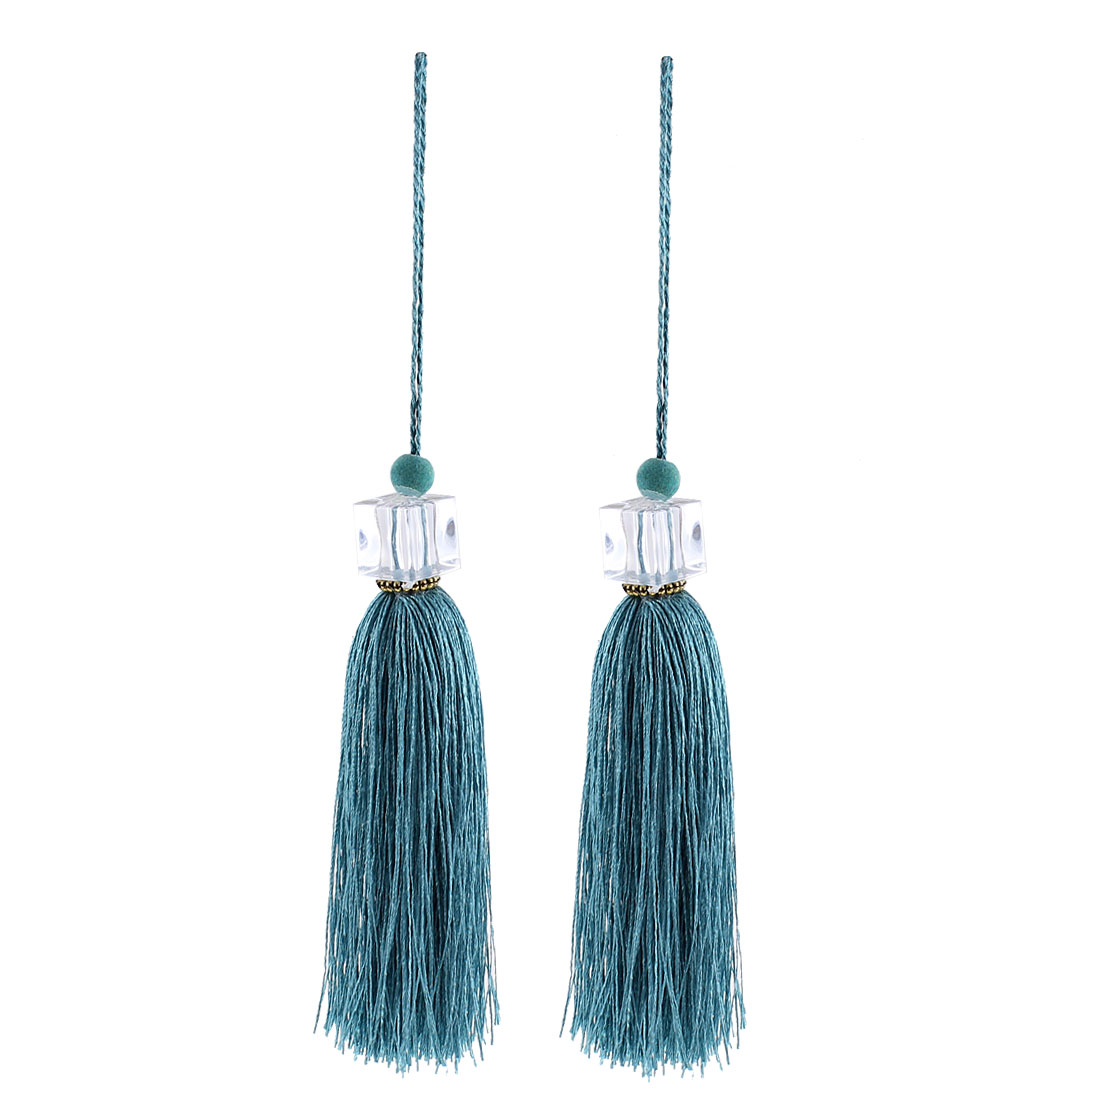 2Pcs Silky Tassels Pendant Sewing DIY Craft Supply Curtain Drapery Deco Light Green